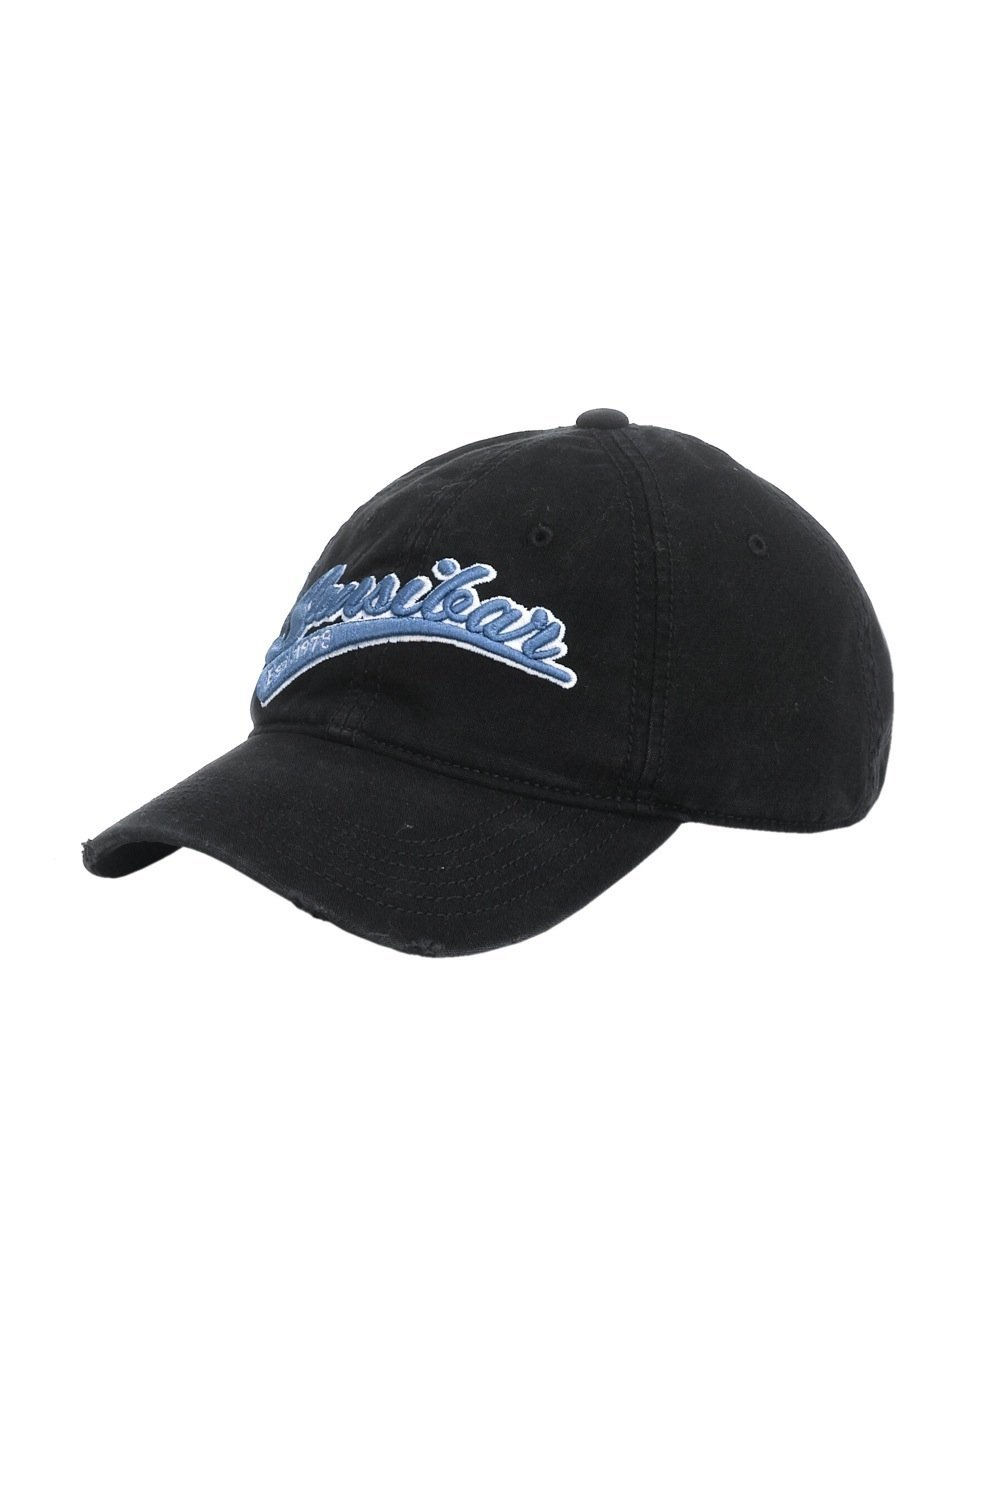 Cap SANSIBAR, Black, Gr. one size